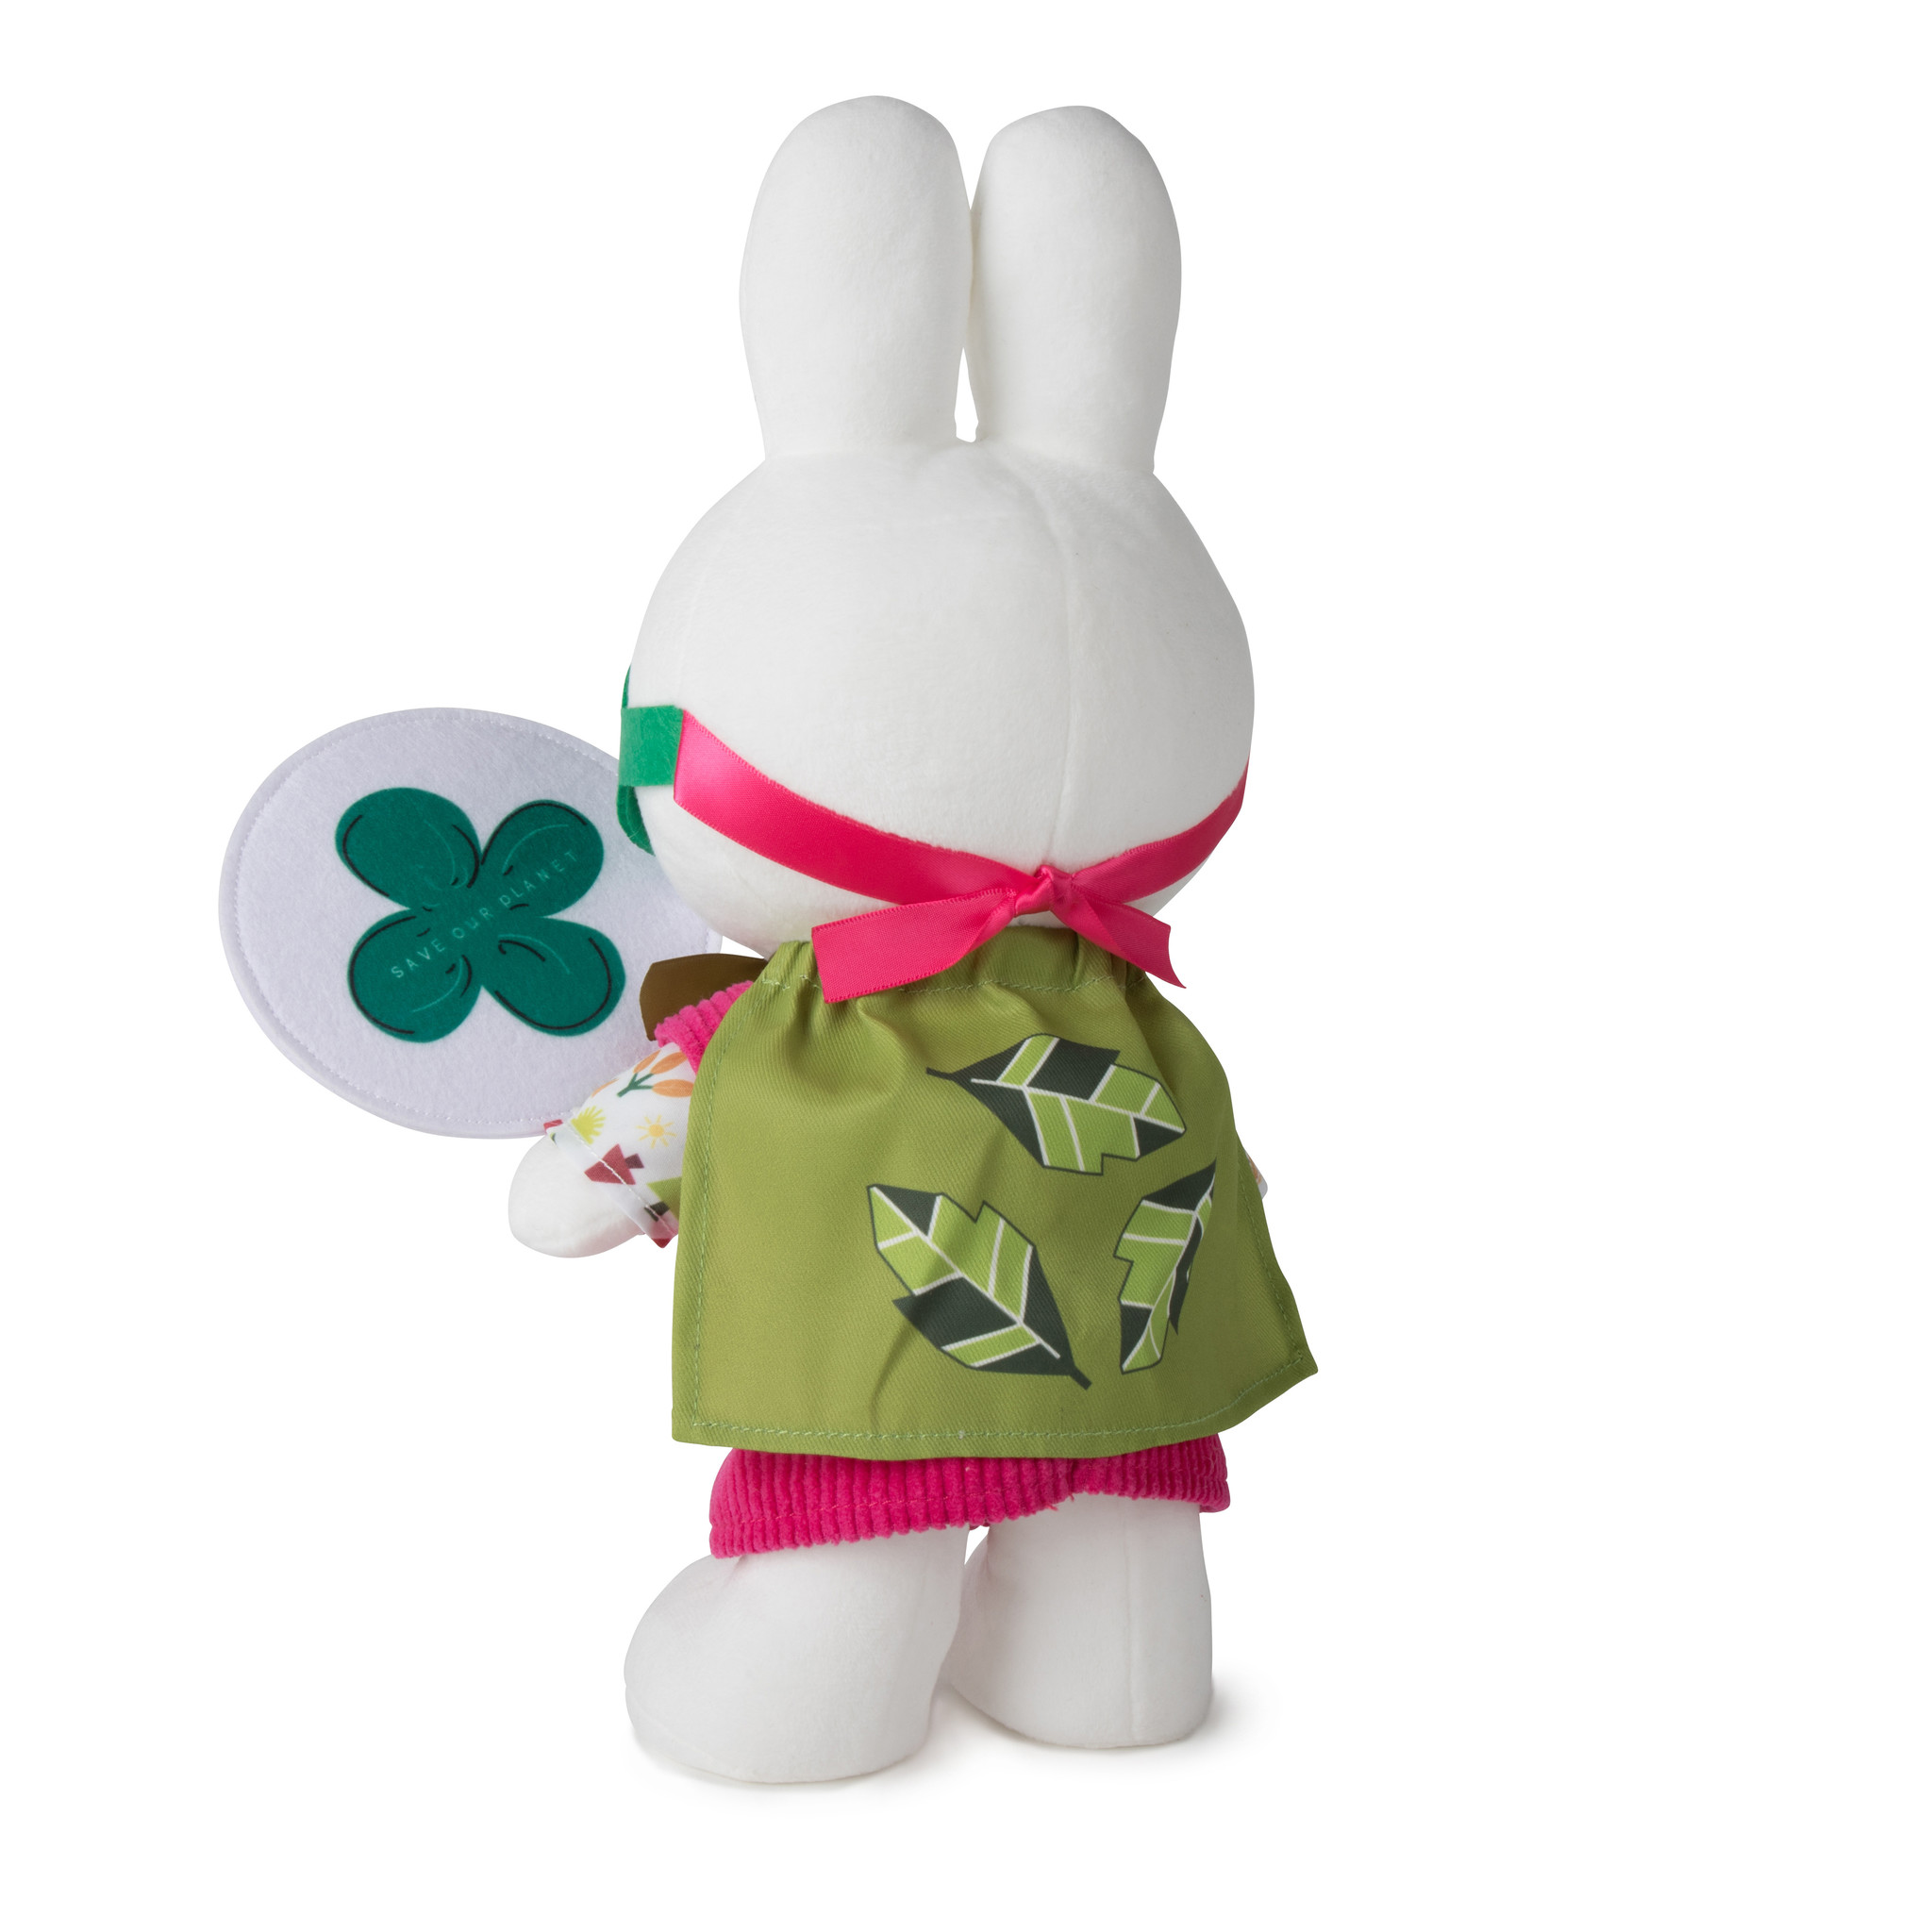 Limited edition Miffy cuddly toy 'Superhero'